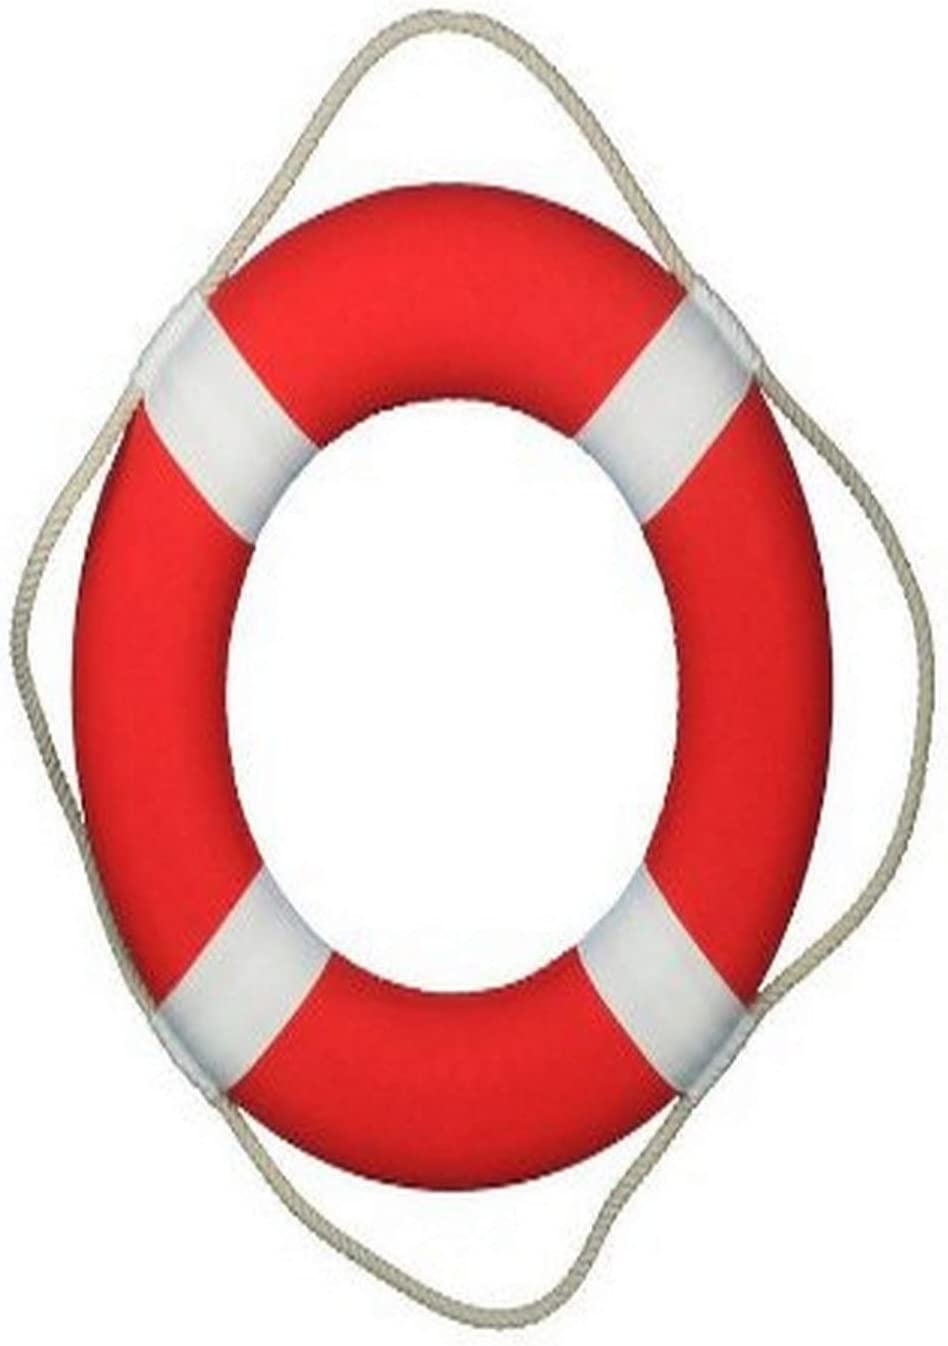 """Hampton Nautical Vibrant Red Lifering with White Bands, 20"""""""